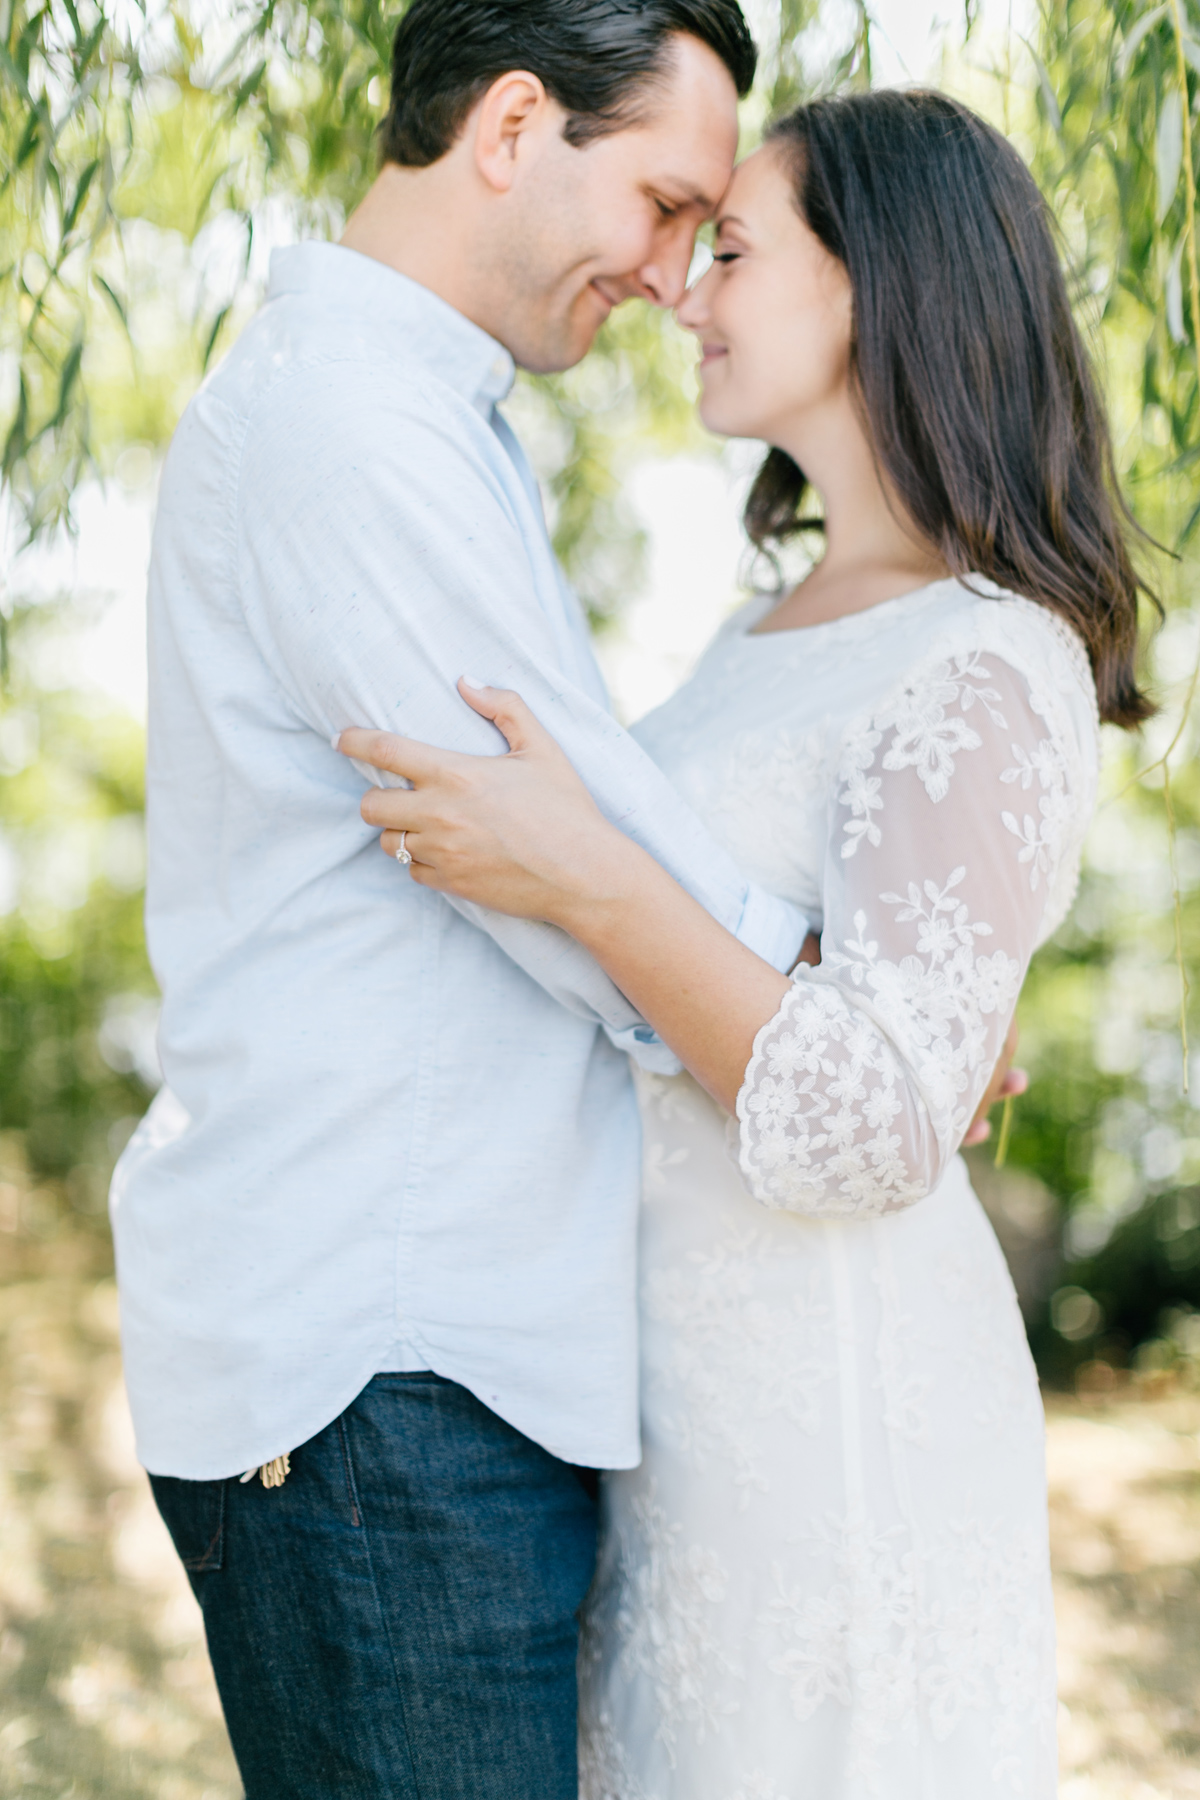 Philadelphia Engagement Photographer | Emily Wren